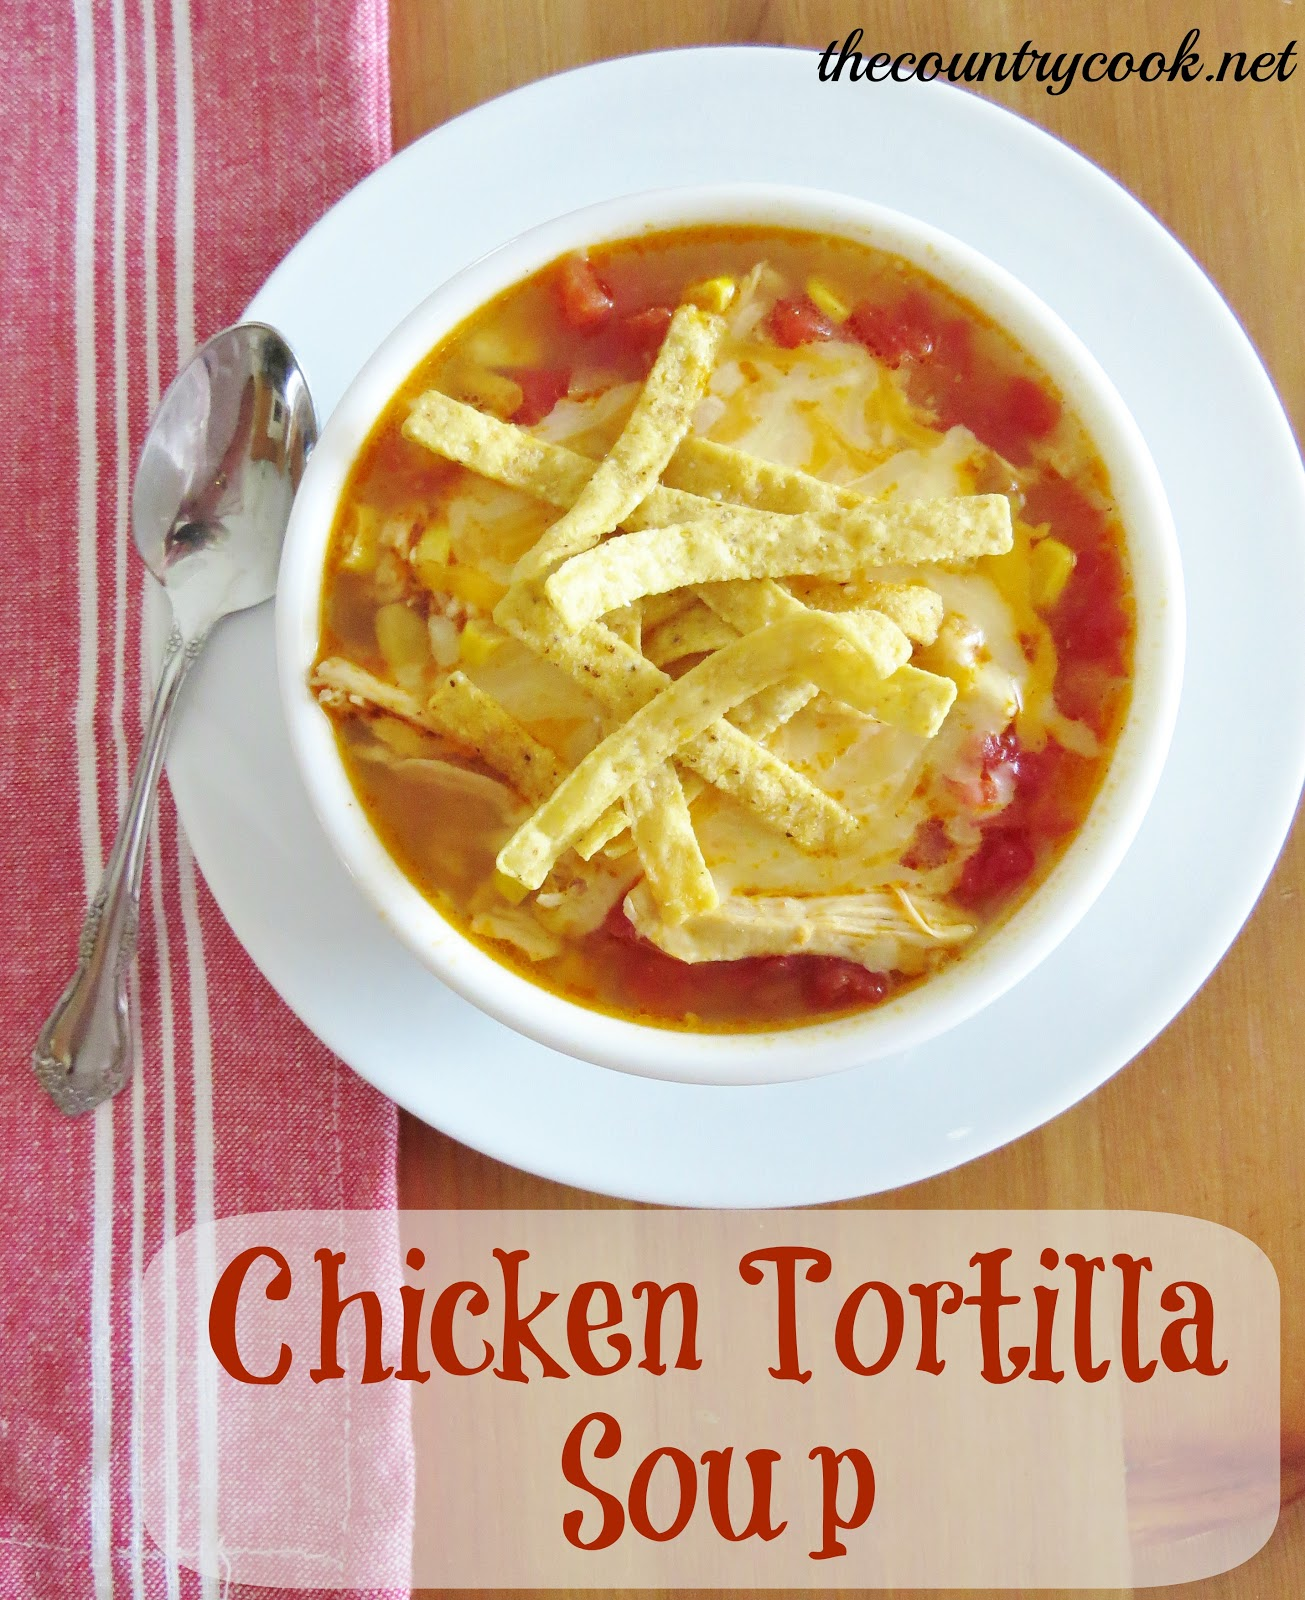 http://4.bp.blogspot.com/-Wea0EBMyX-Q/UMsmopHaCcI/AAAAAAAAJU8/dYNm732WqWk/s1600/Chicken+Tortilla+Soup+(with+graphics,+all+rights+reserved,+www.thecountrycook.net).jpg